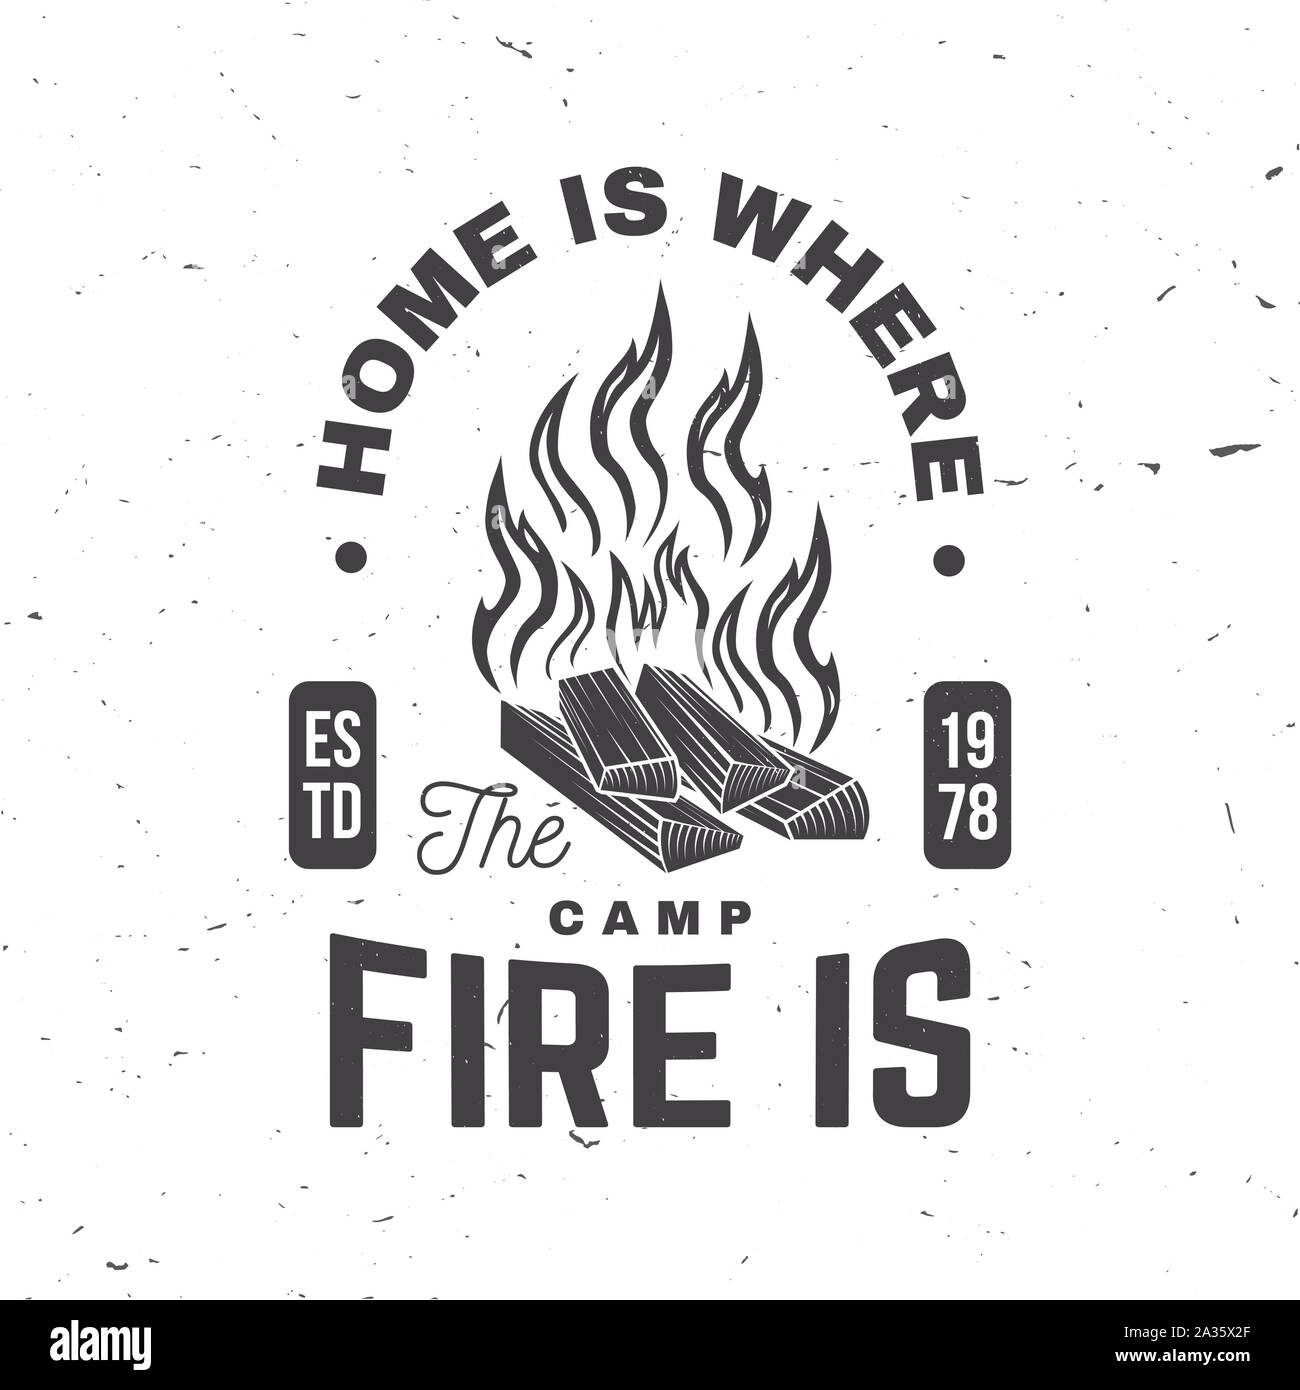 Home is where the campfire is. Vector illustrator. Concept for shirt or badge, overlay, print, stamp or tee. Vintage typography design with campfire silhouette. Stock Vector